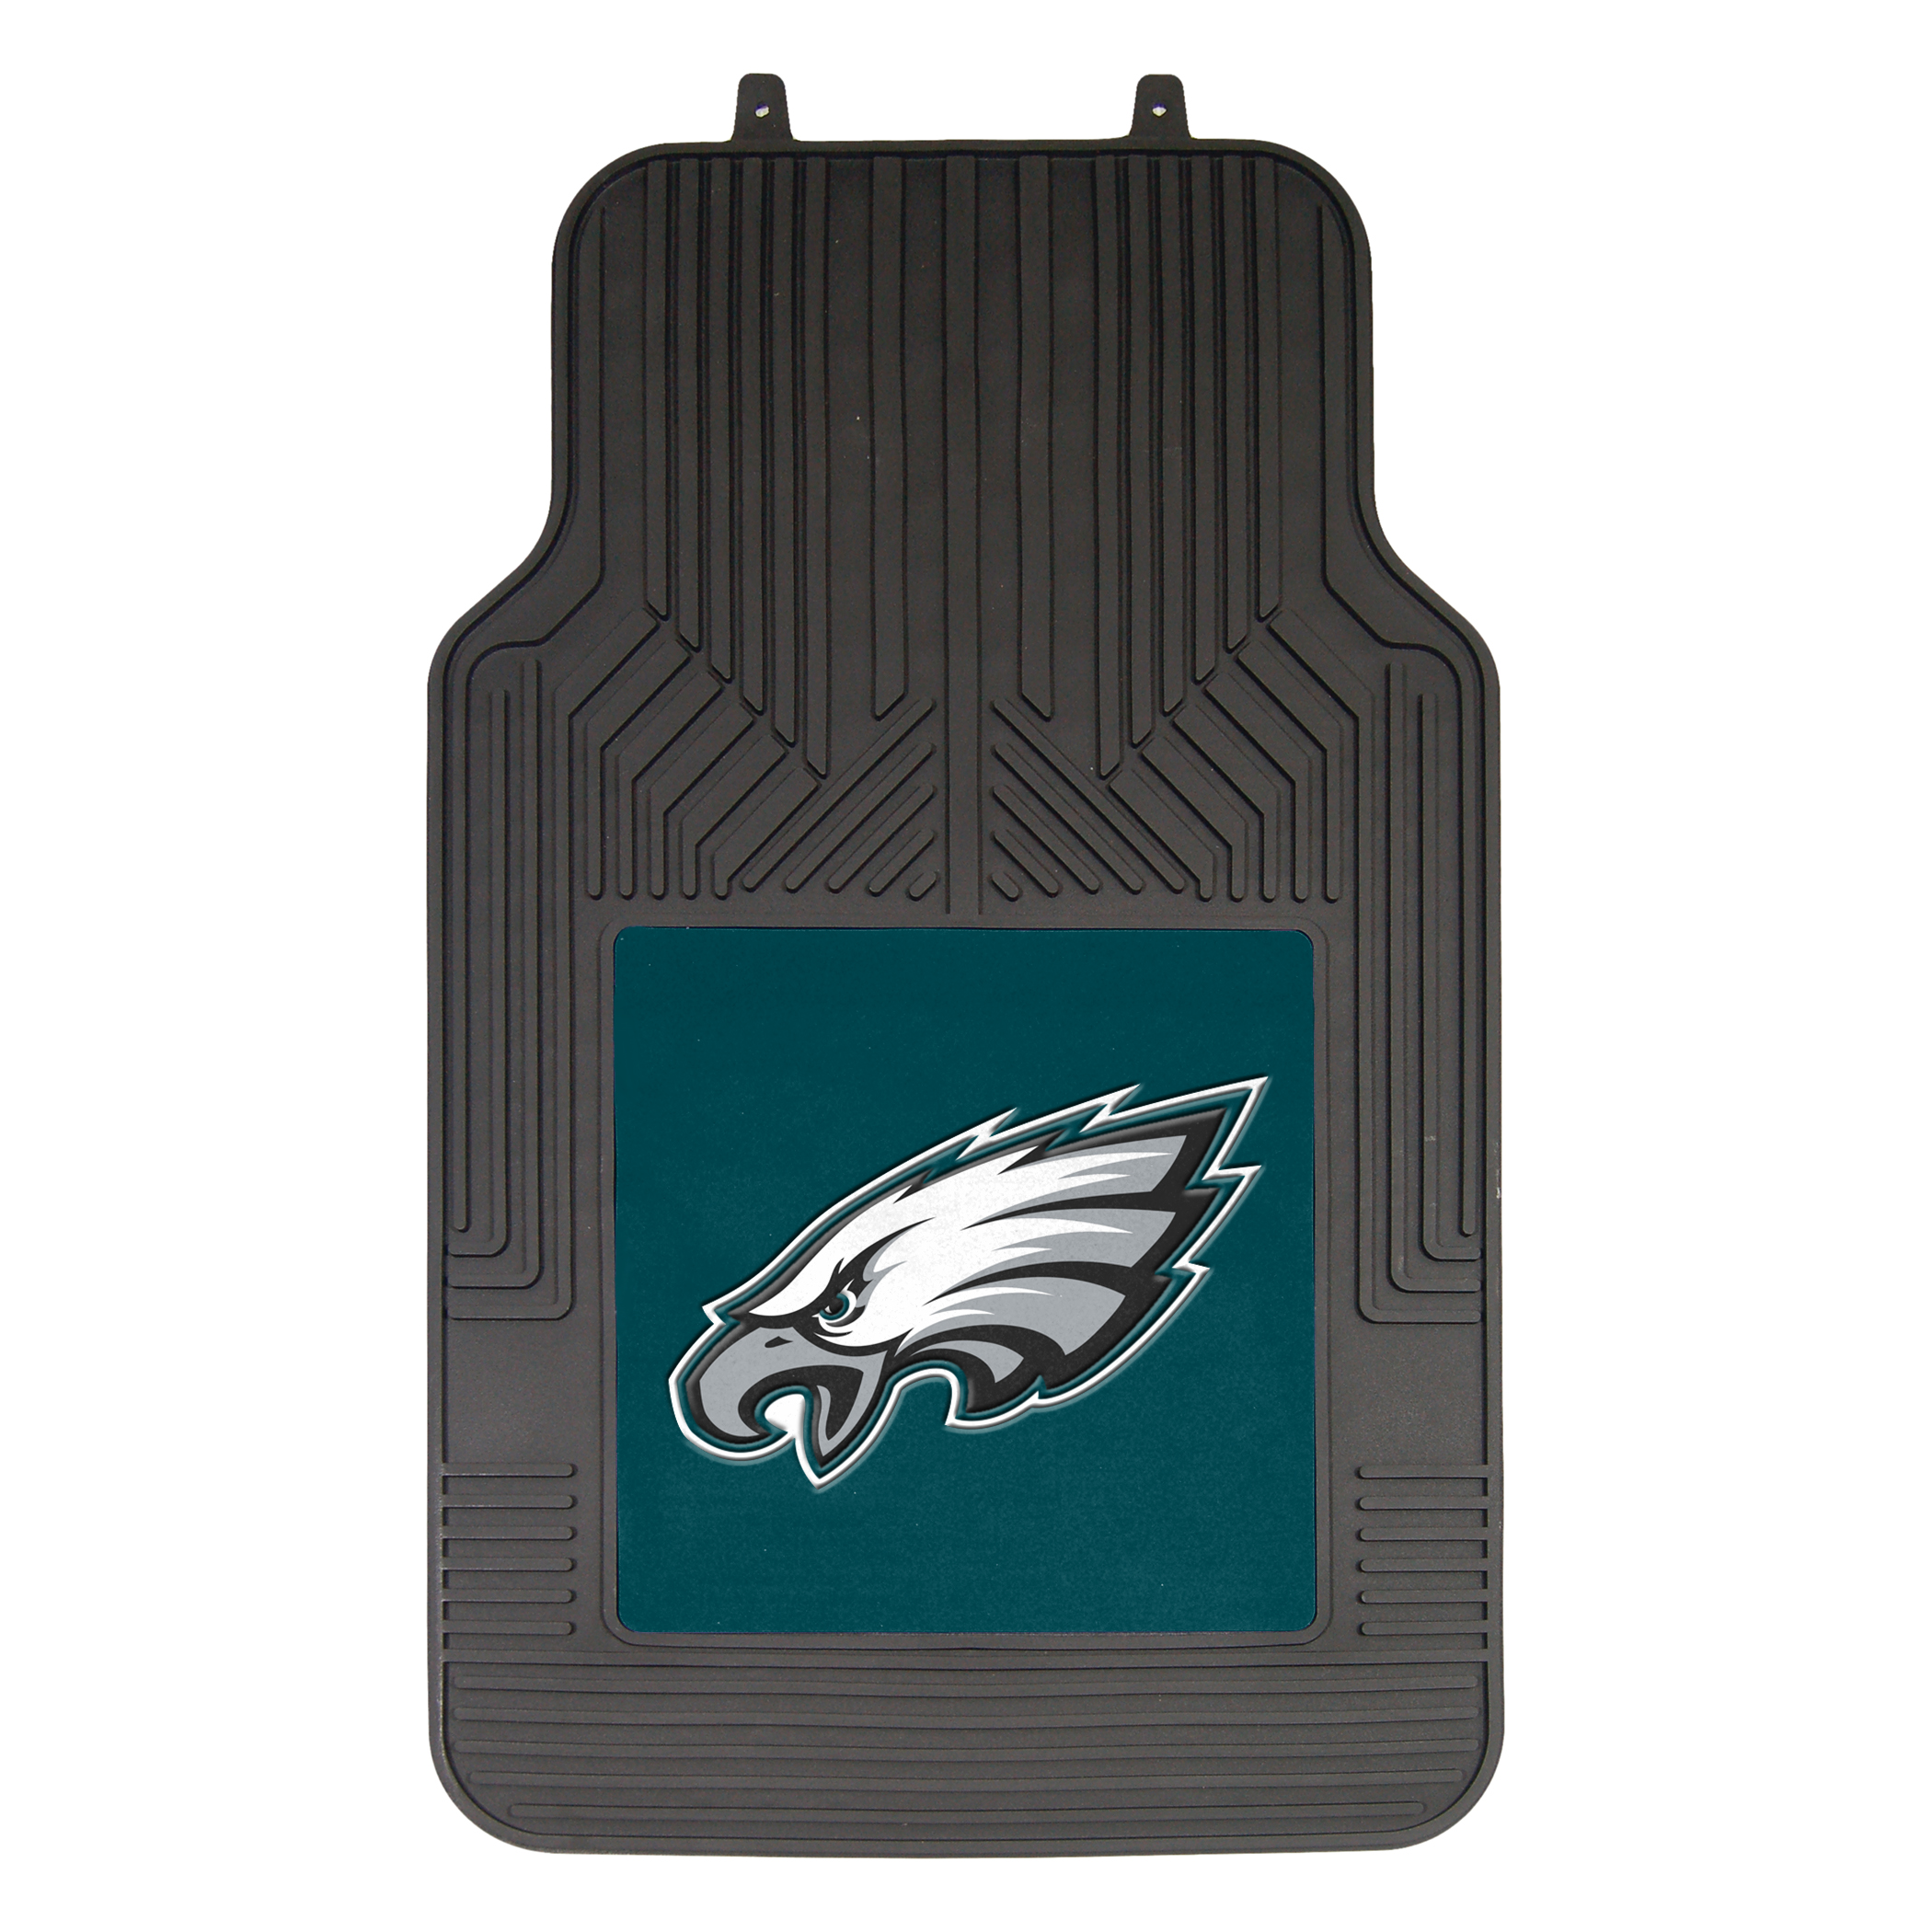 NFL Philadelphia Eagles Floor Mats - Set of 2